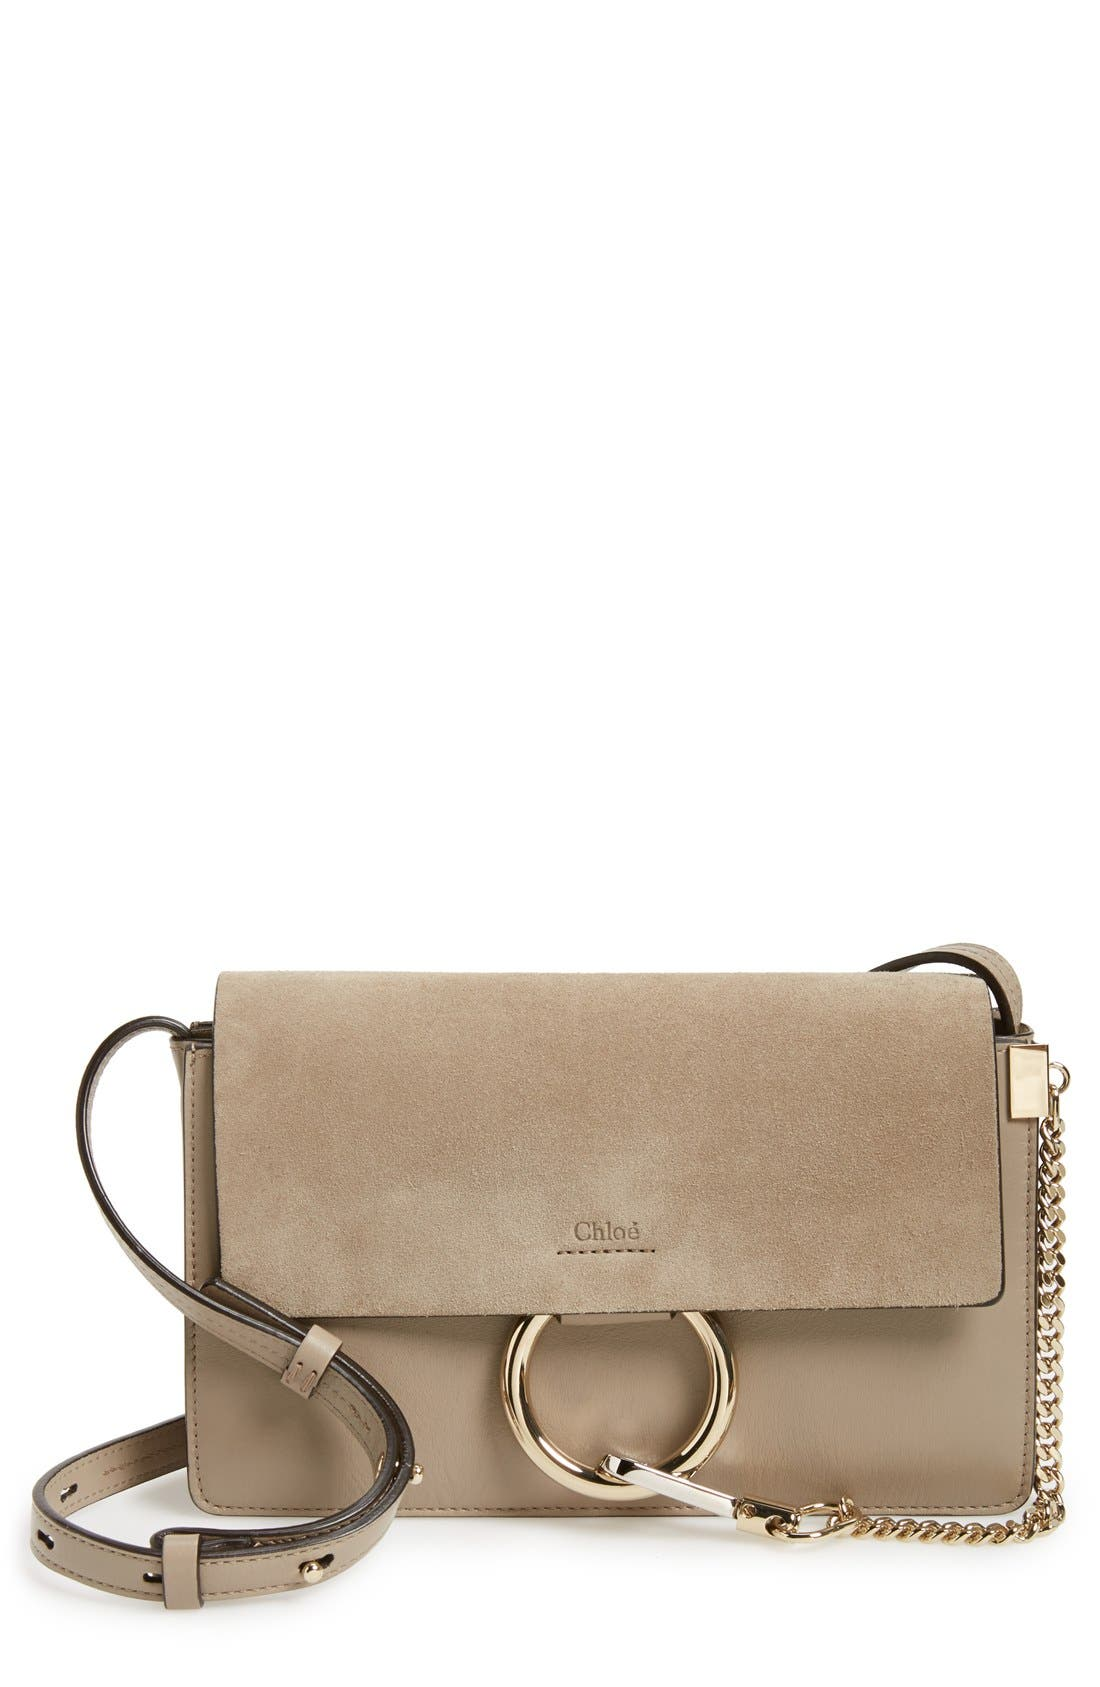 CHLOÉ Small Faye Leather Shoulder Bag, Main, color, MOTTY GREY